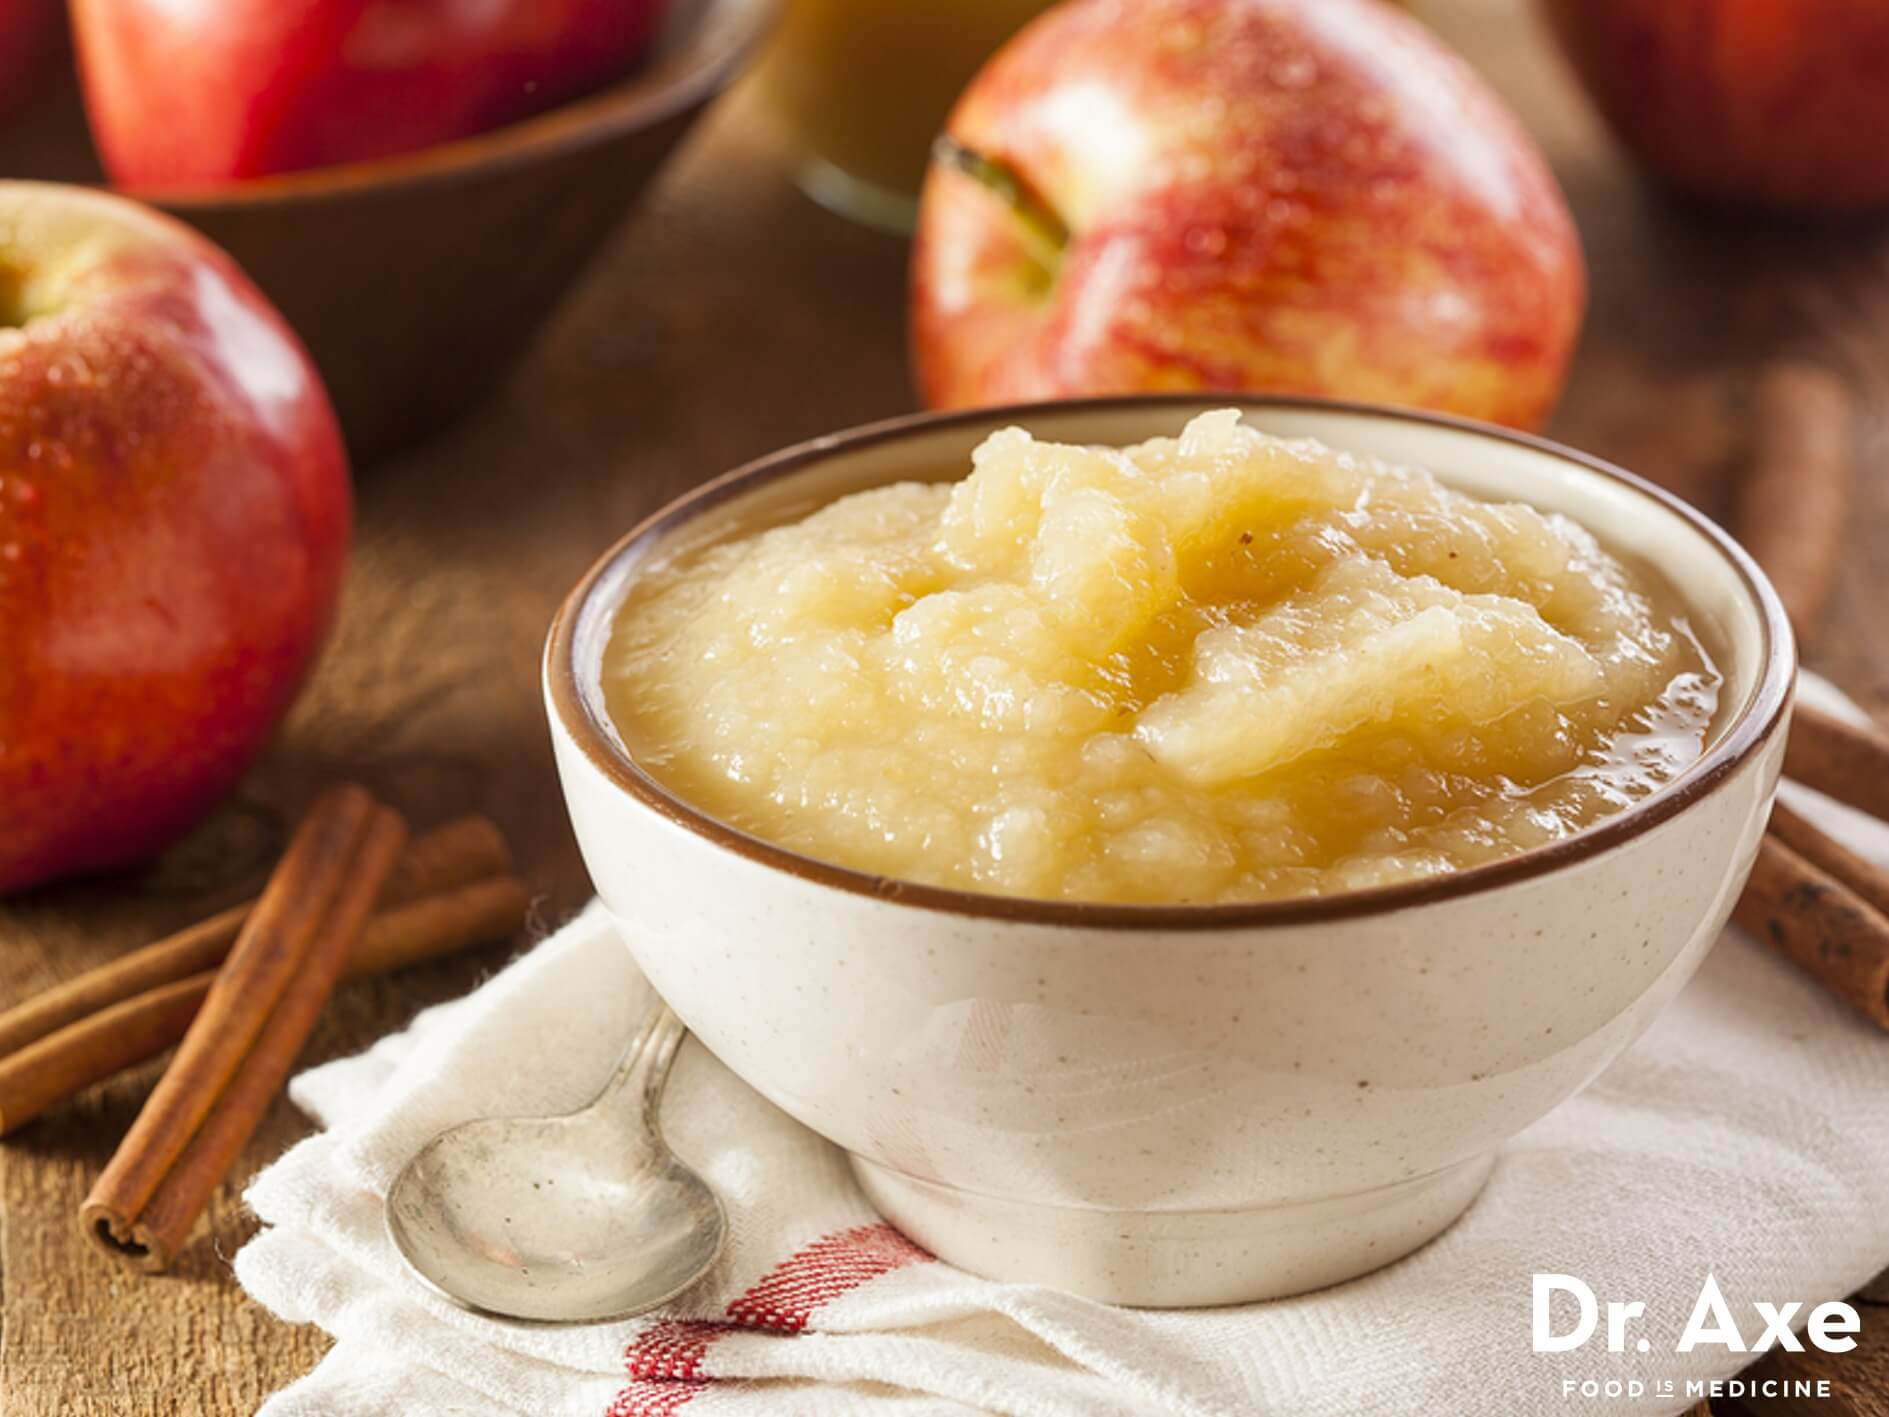 Recipes Using Applesauce  Crockpot Cinnamon Applesauce Recipe DrAxe